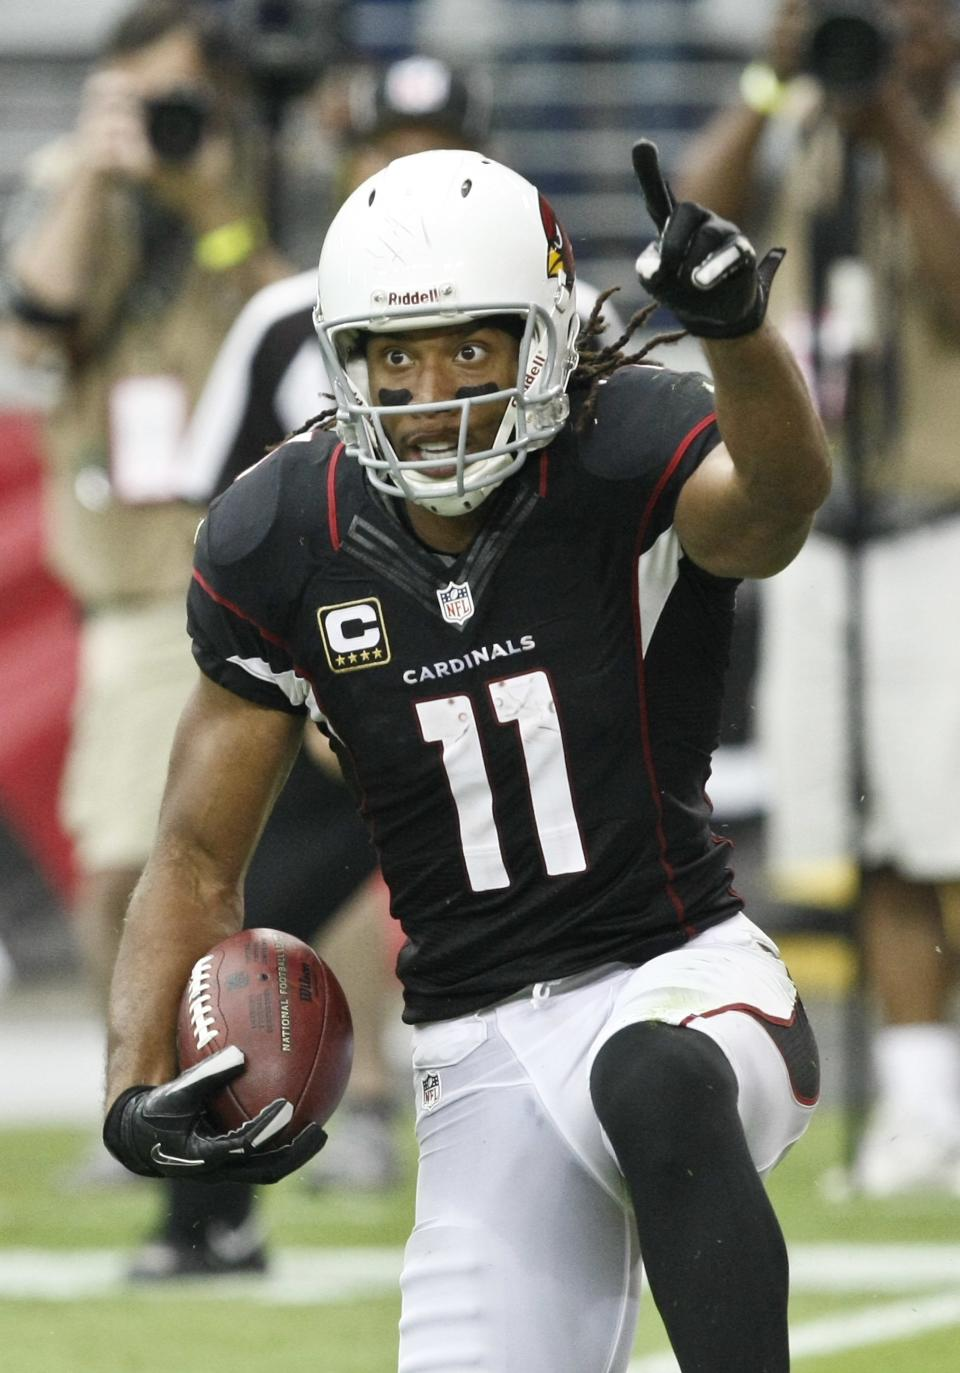 Arizona Cardinals' Larry Fitzgerald (11) celebrates his touchdown catch against the Philadelphia Eagles in the first half of an NFL football game on Sunday, Sept. 23, 2012, in Glendale, Ariz. (AP Photo/Rick Scuteri)